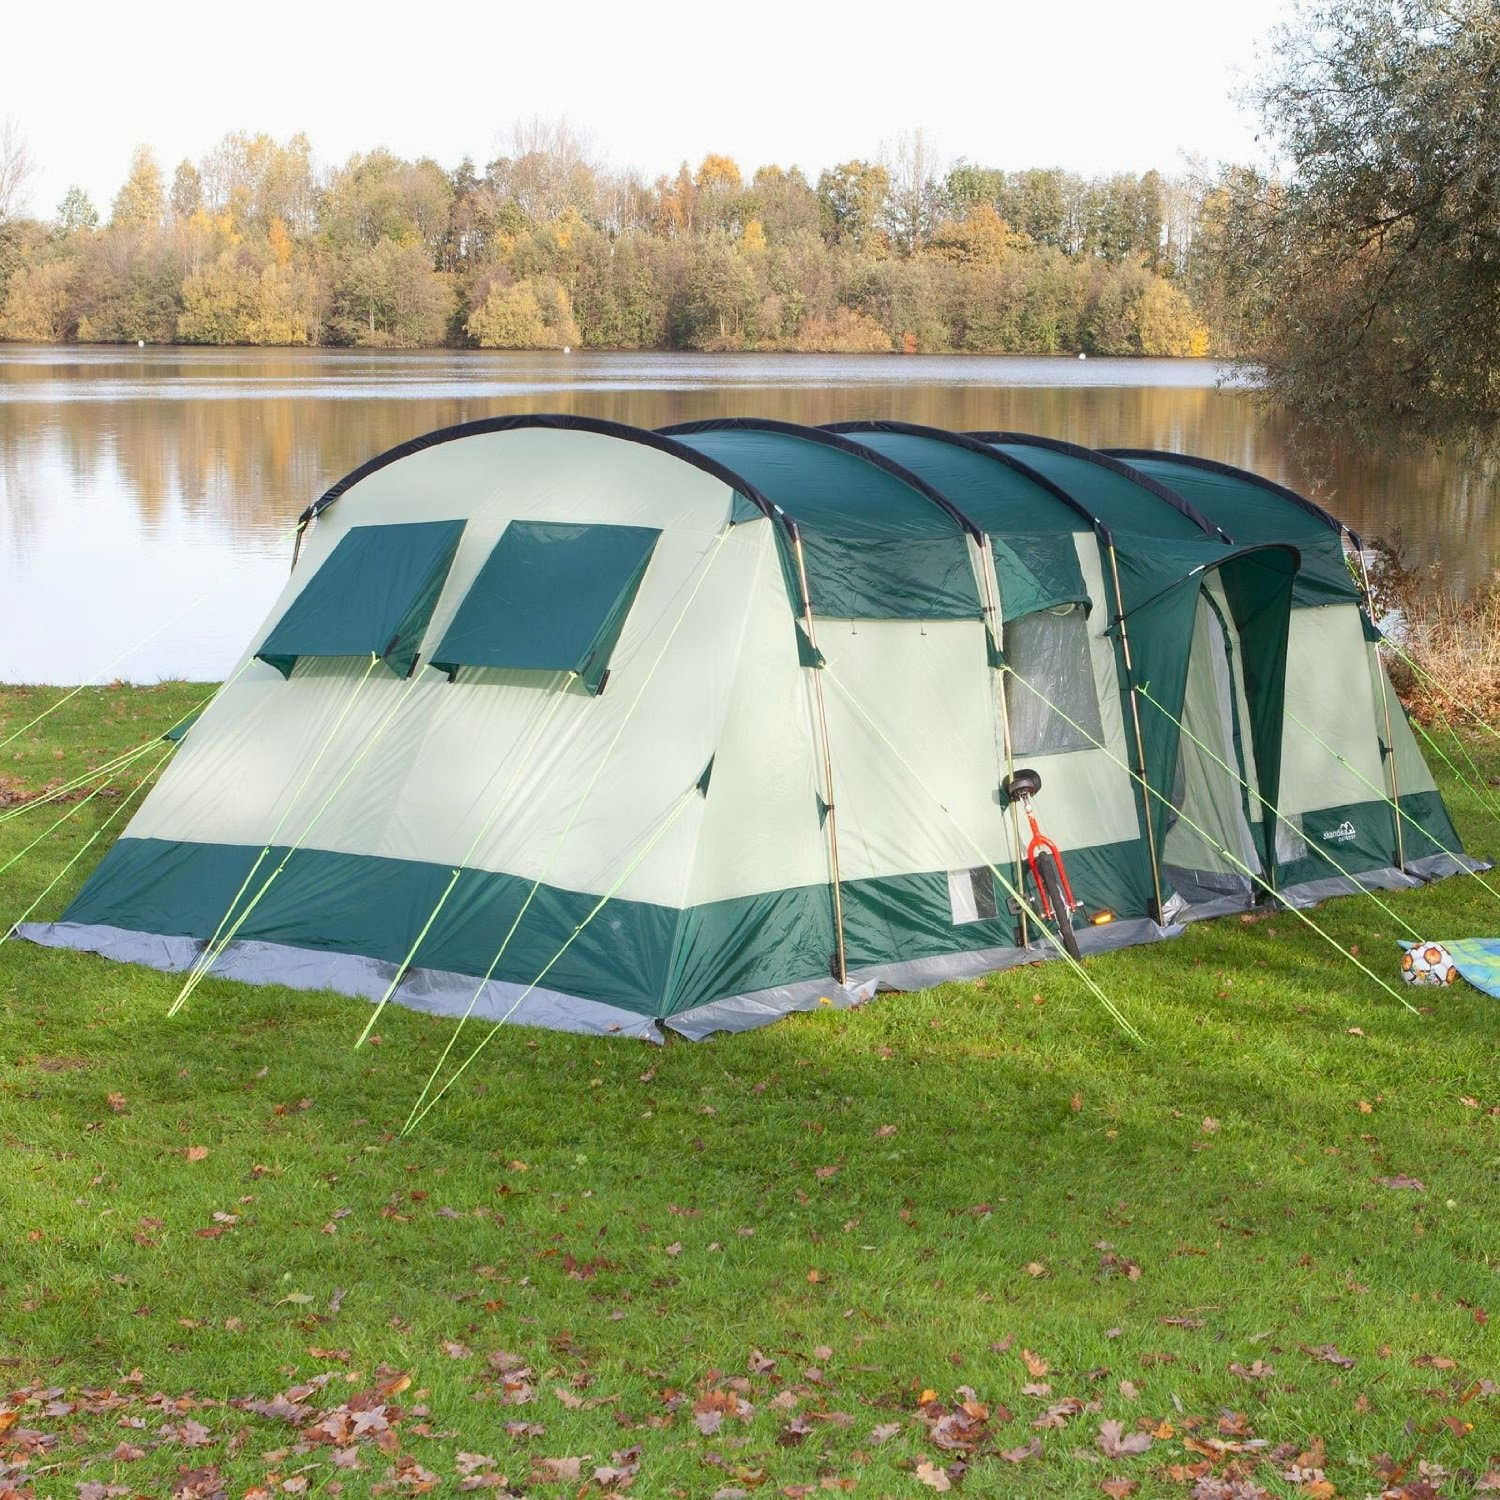 The Skundika HURRICANE is an extremely spacious 8-berth family tent which is quick and easy to erect and at the same time offers great weather protection. & Amazonic: Tent| Family tent | Skandika Hurricane 8 Person Family Tent